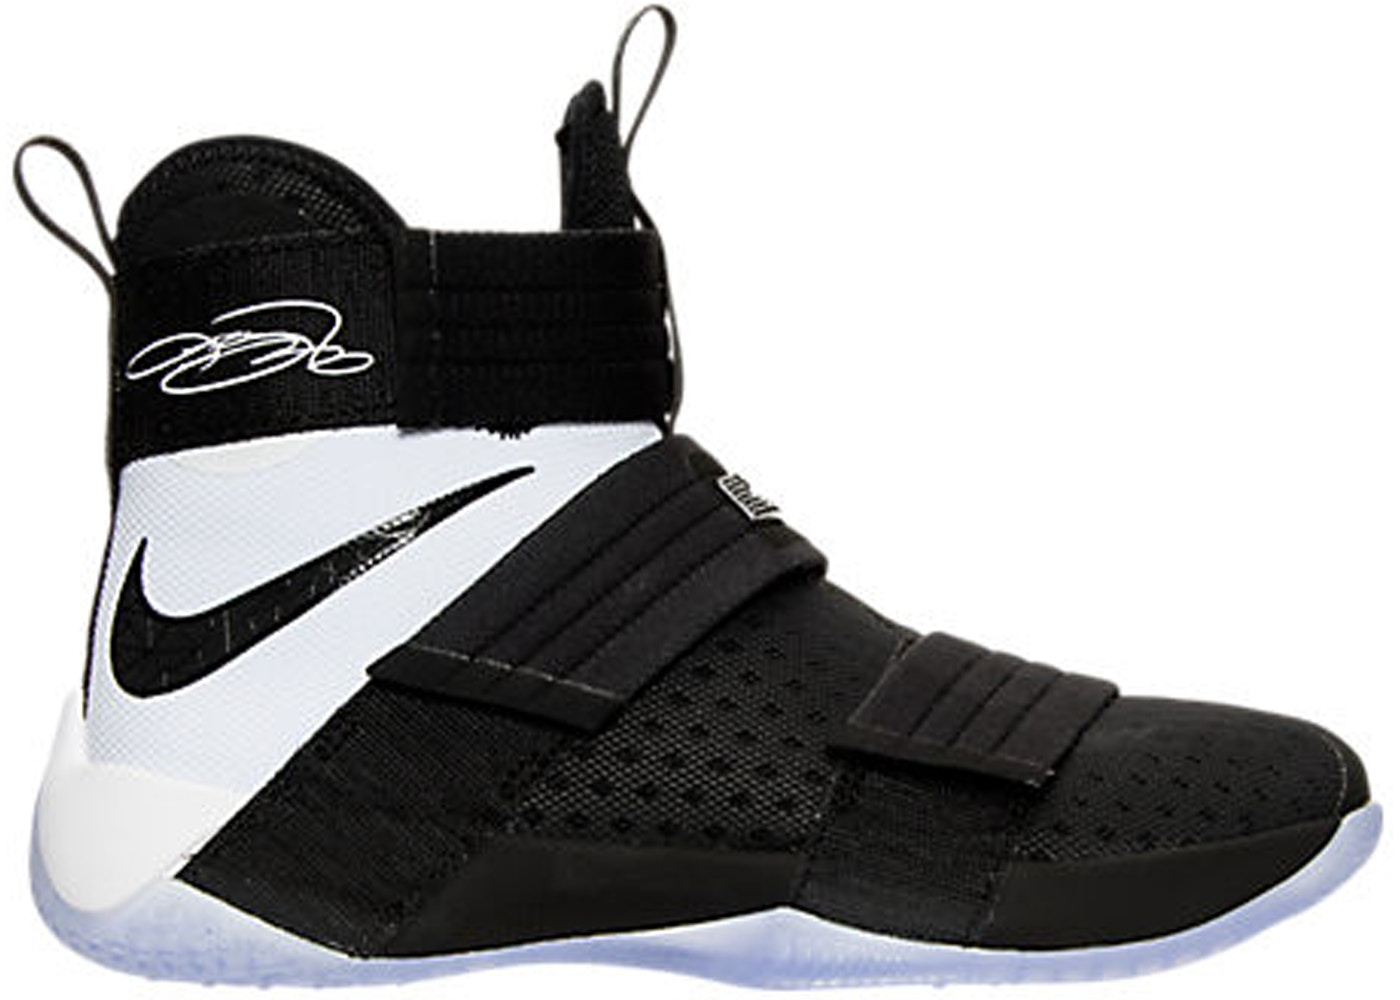 12b6d97ff88 LeBron Zoom Soldier 10 Black White - 844378-001